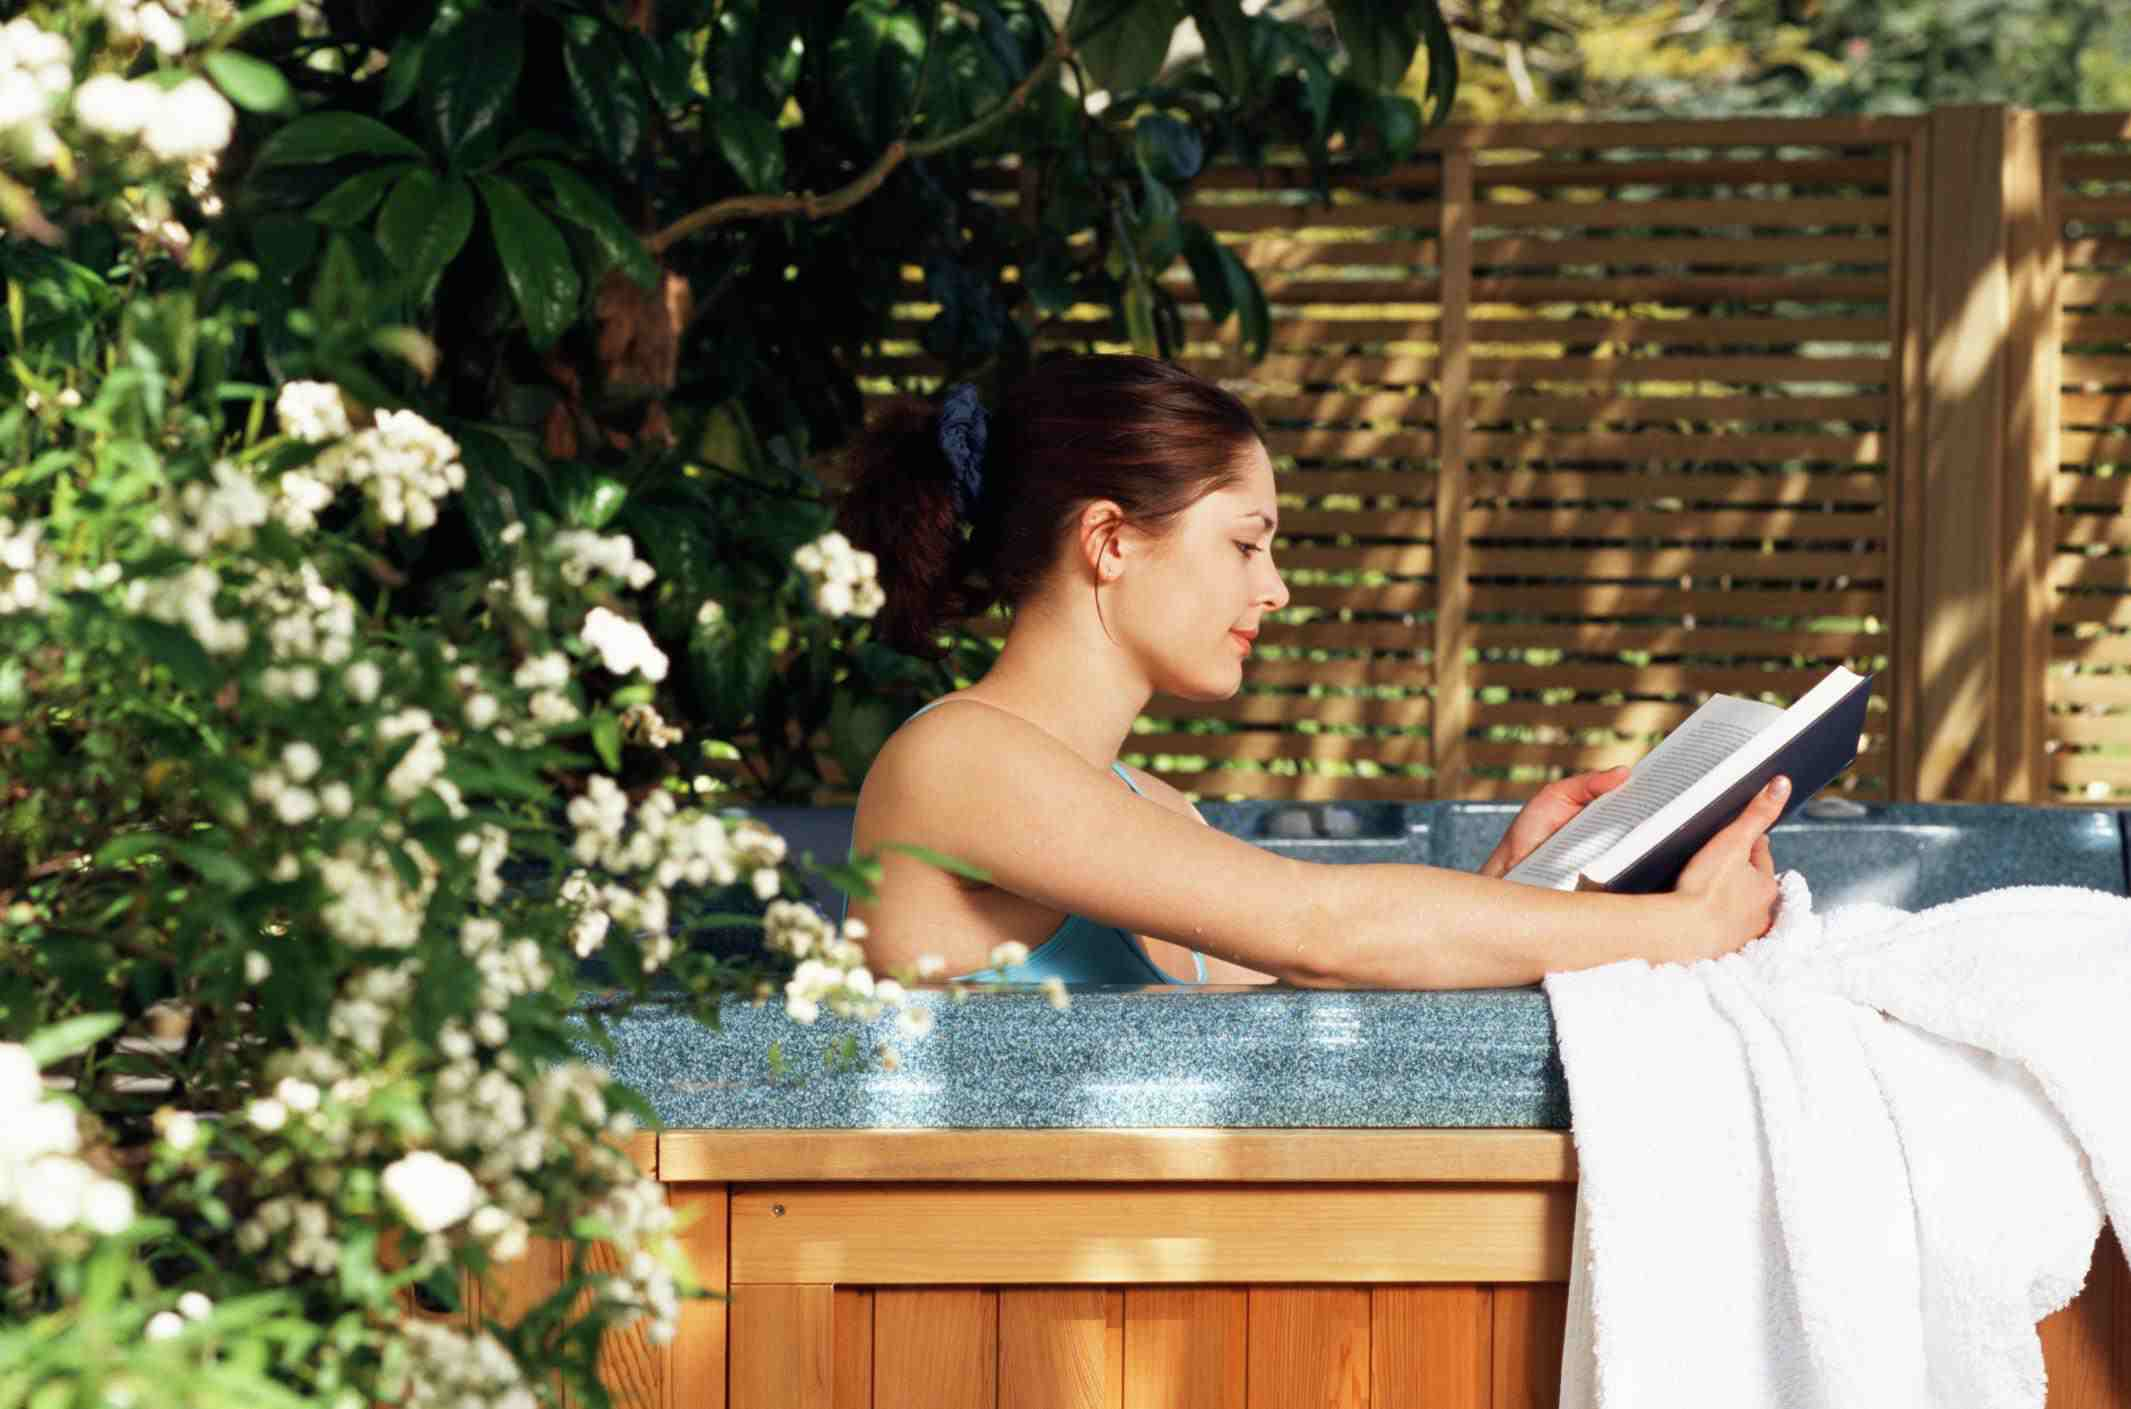 Woman reading in hot tub